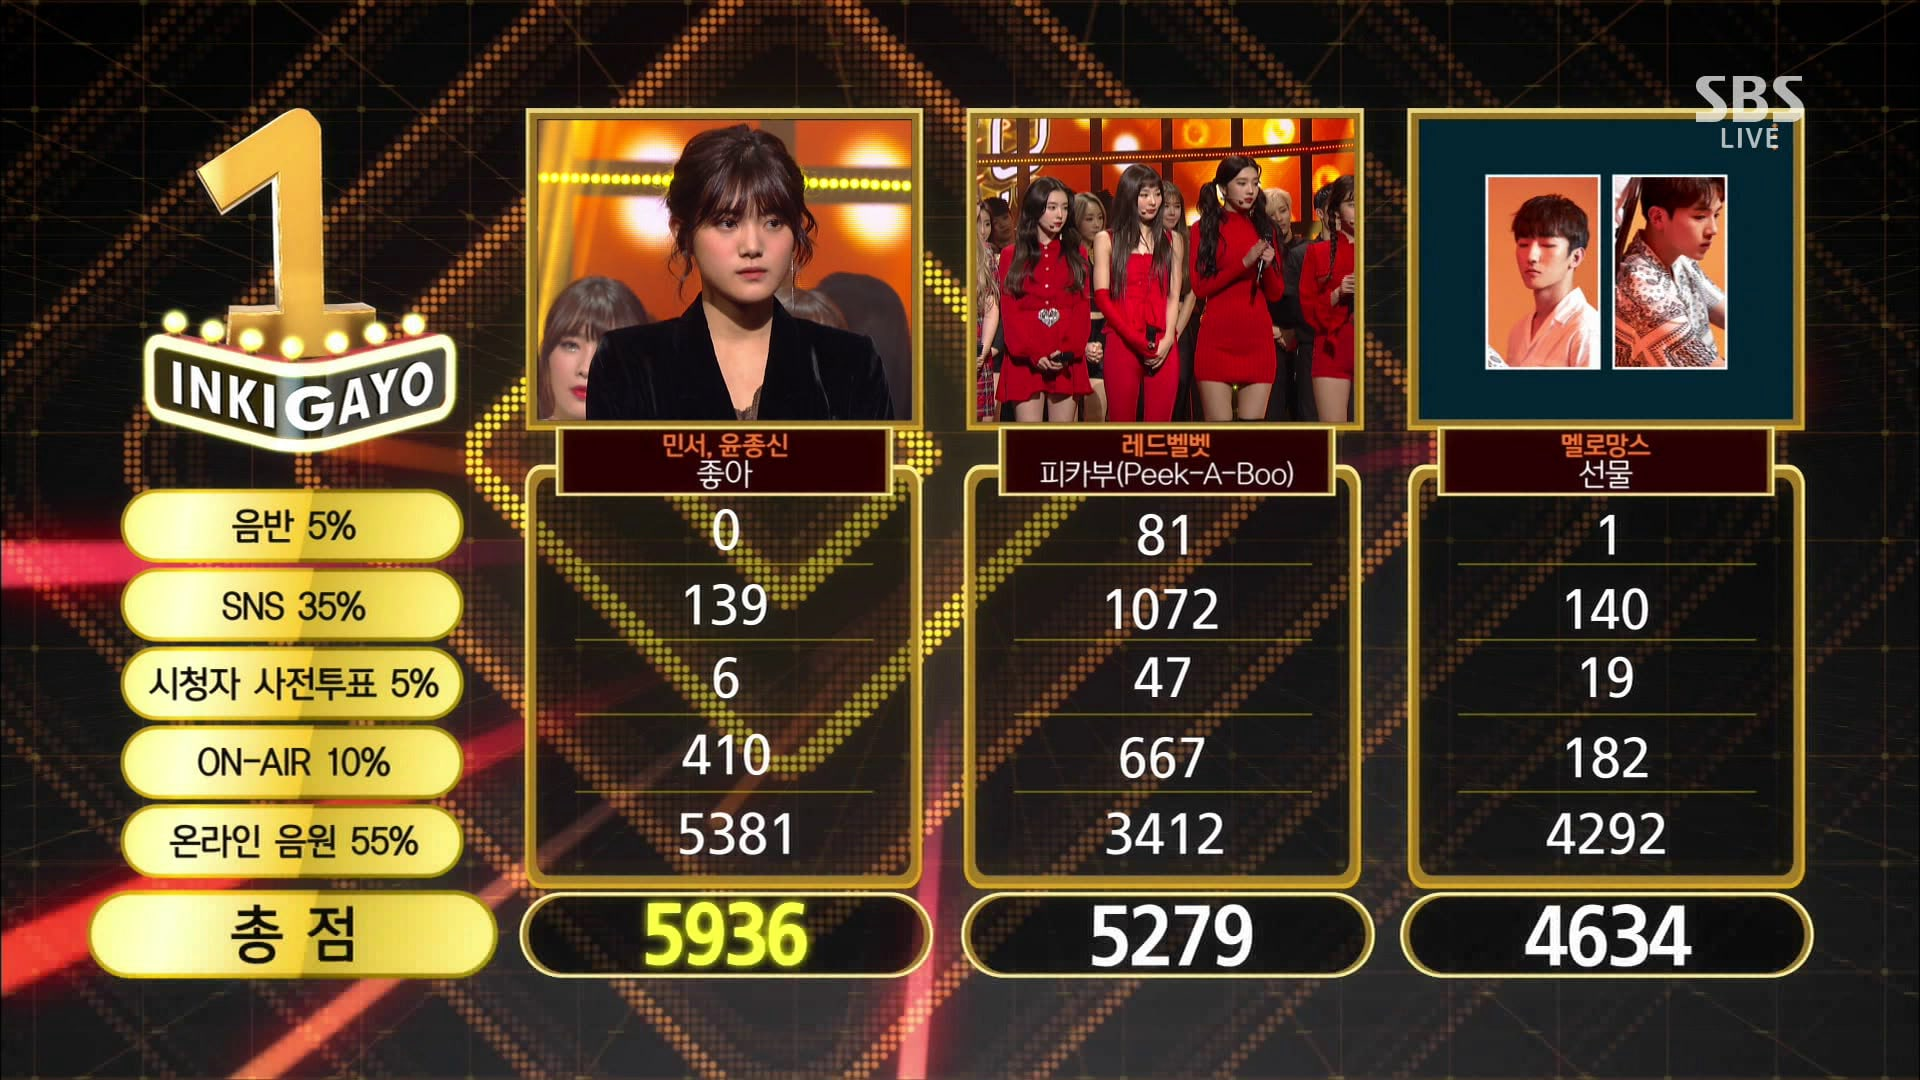 Watch: Minseo And Yoon Jong Shin Take 1st Win For âYesâ On âInkigayoâ; Performances By EXID, Red Velvet, And More!